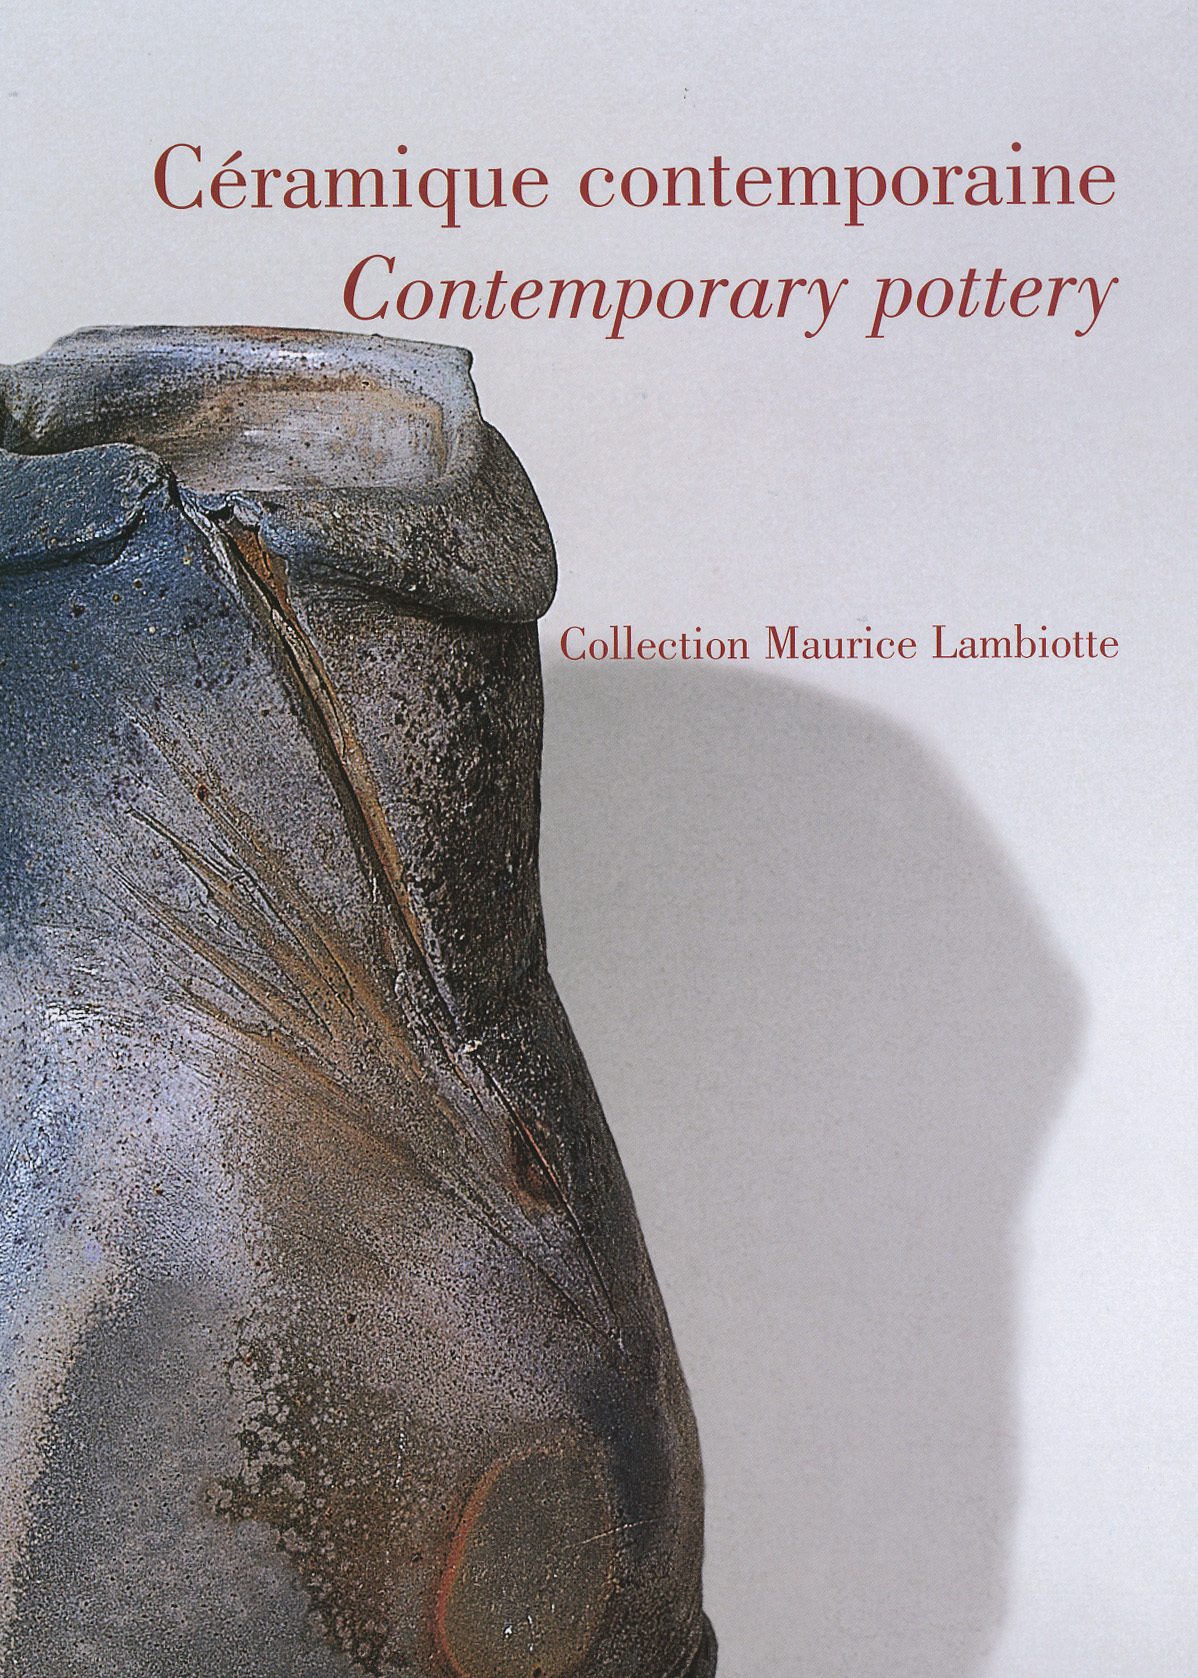 CERAMIQUE CONTEMPORAINE. COLLECTION MAURICE LAMBIOTTE